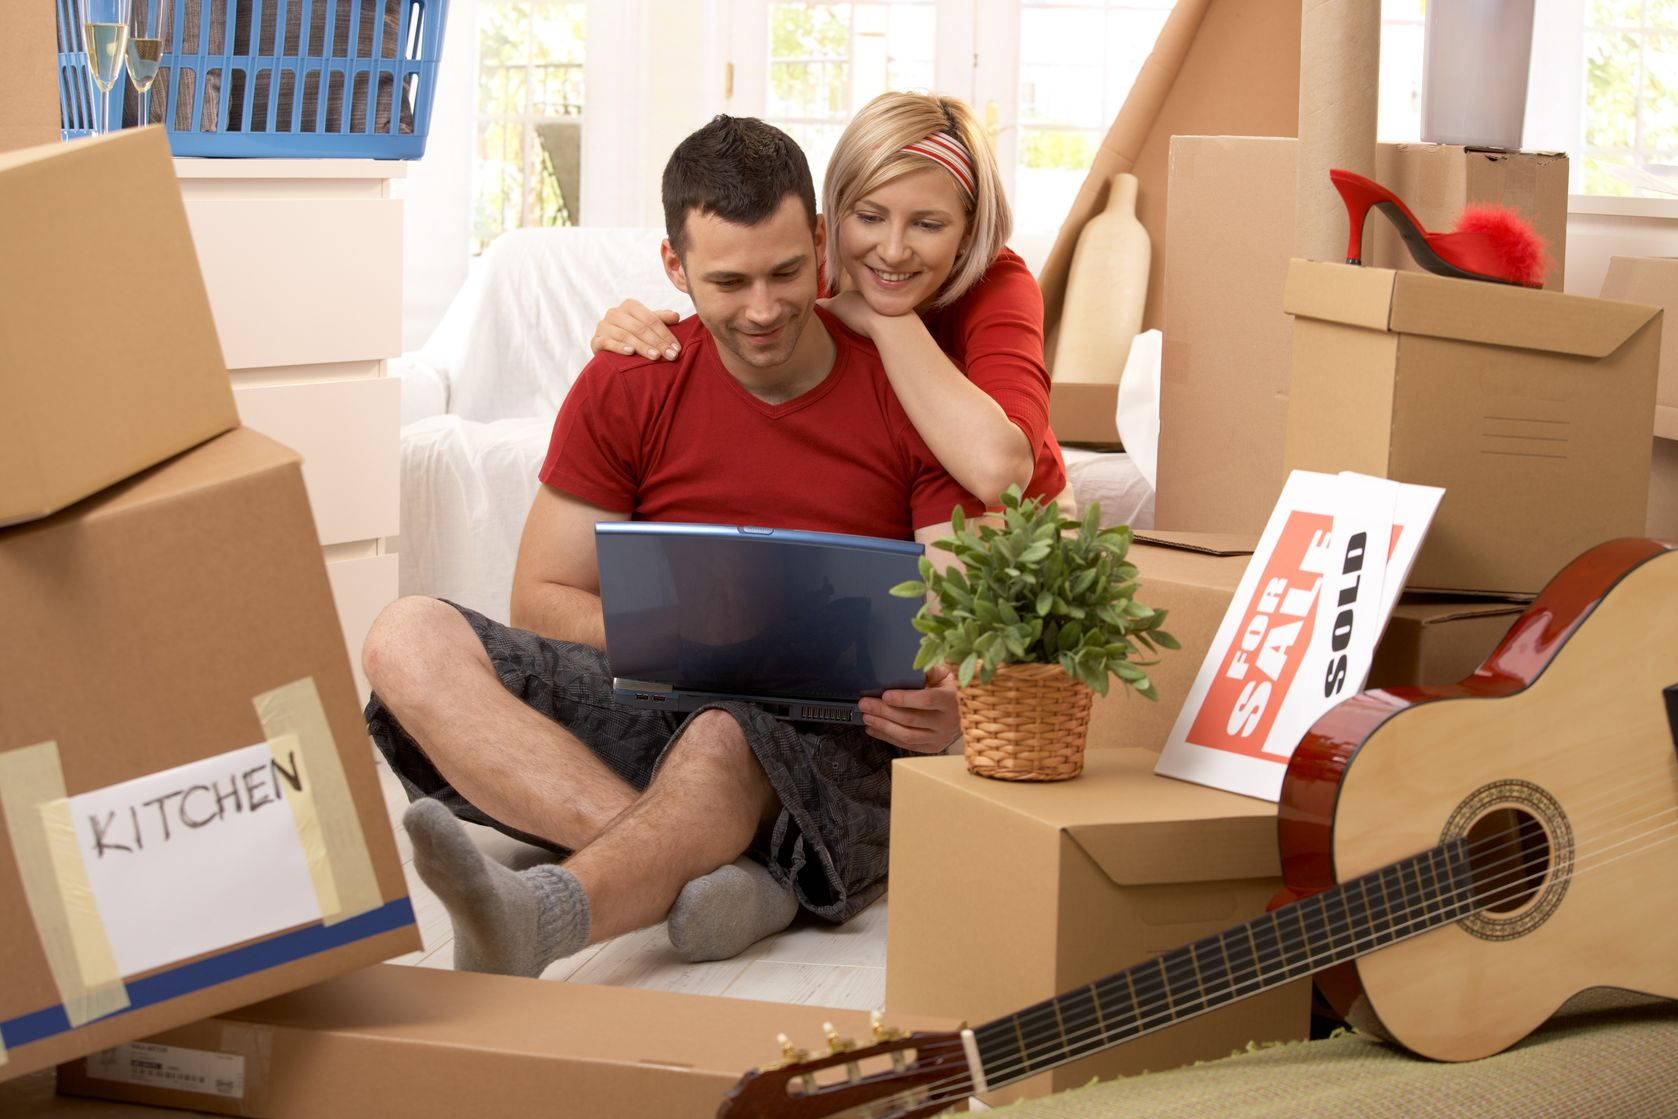 7 Things Every New Homeowner Needs ASAP